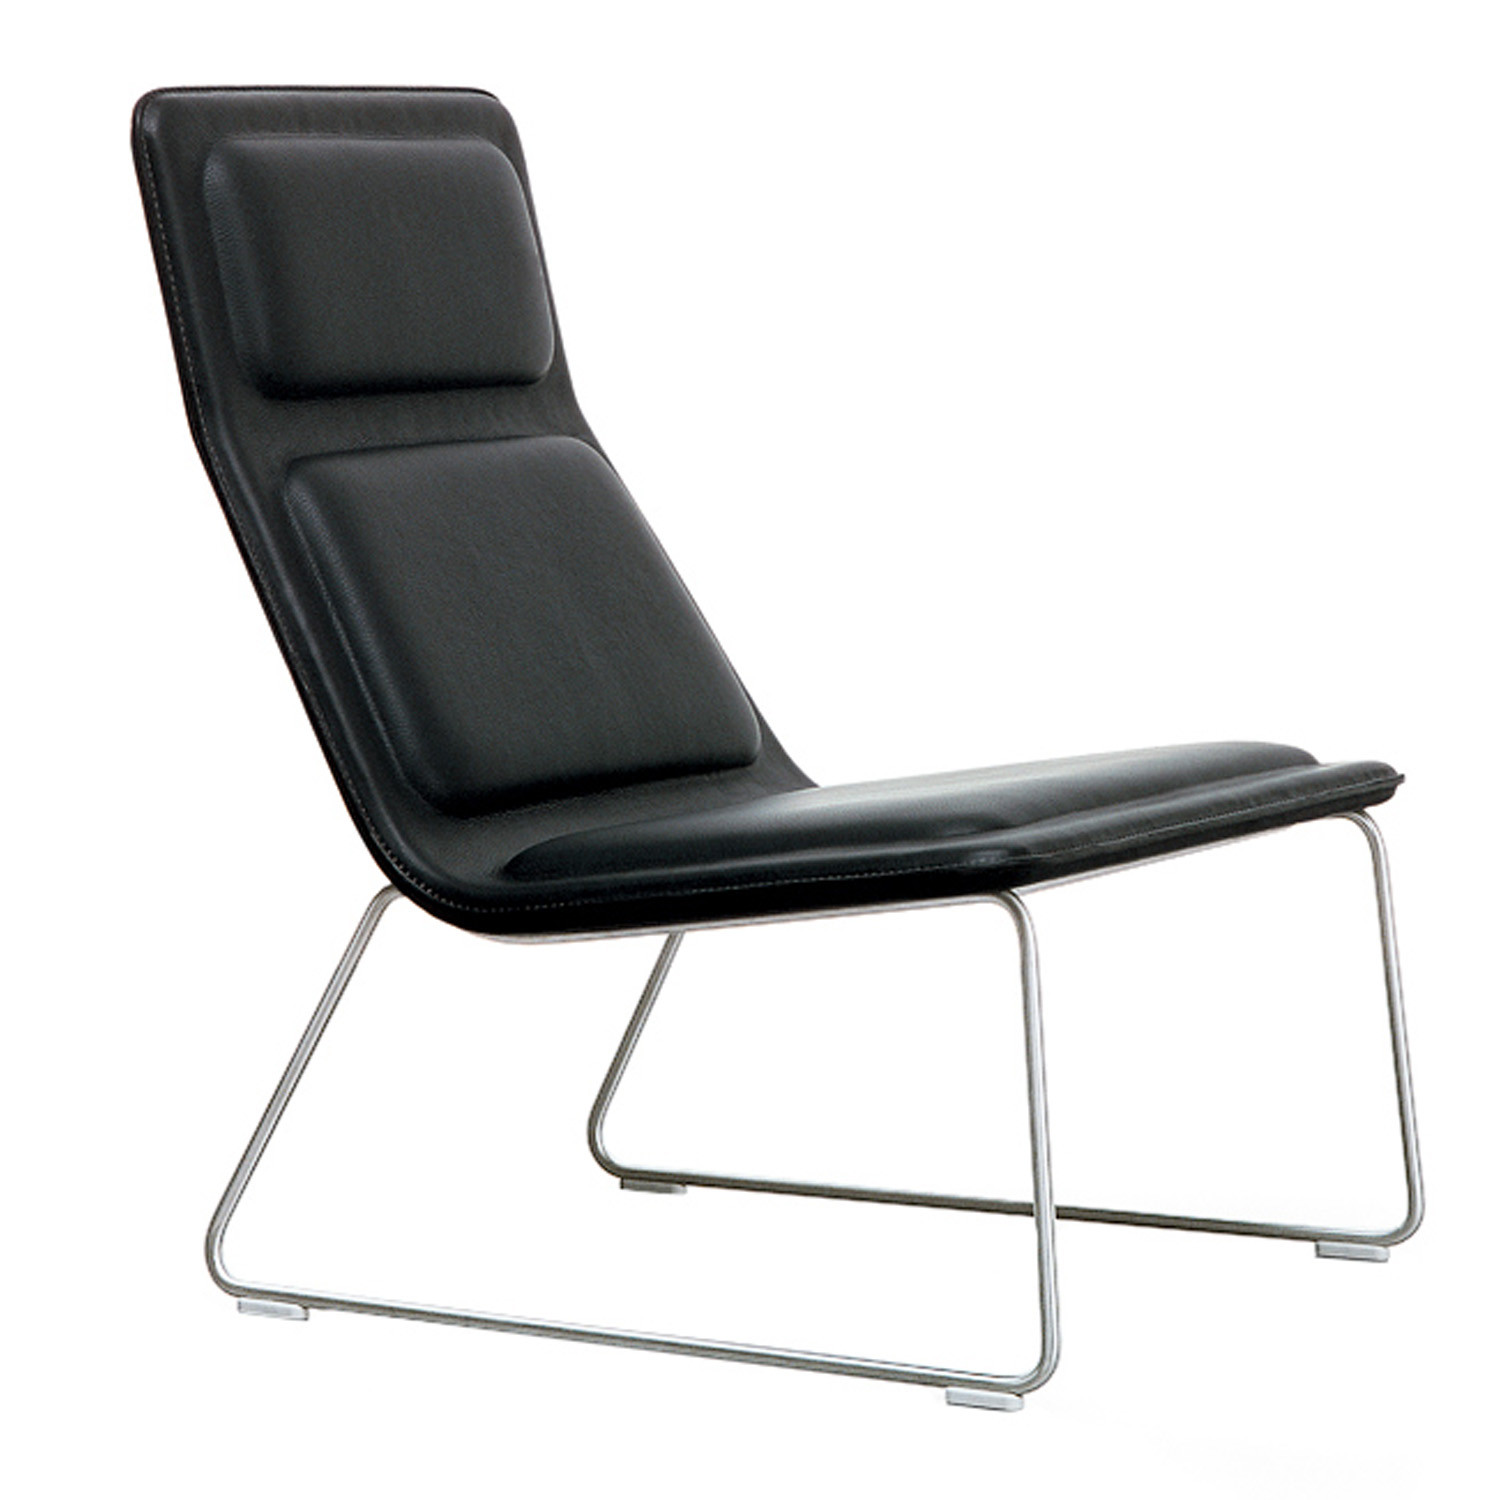 Low Pad Armchair in Black